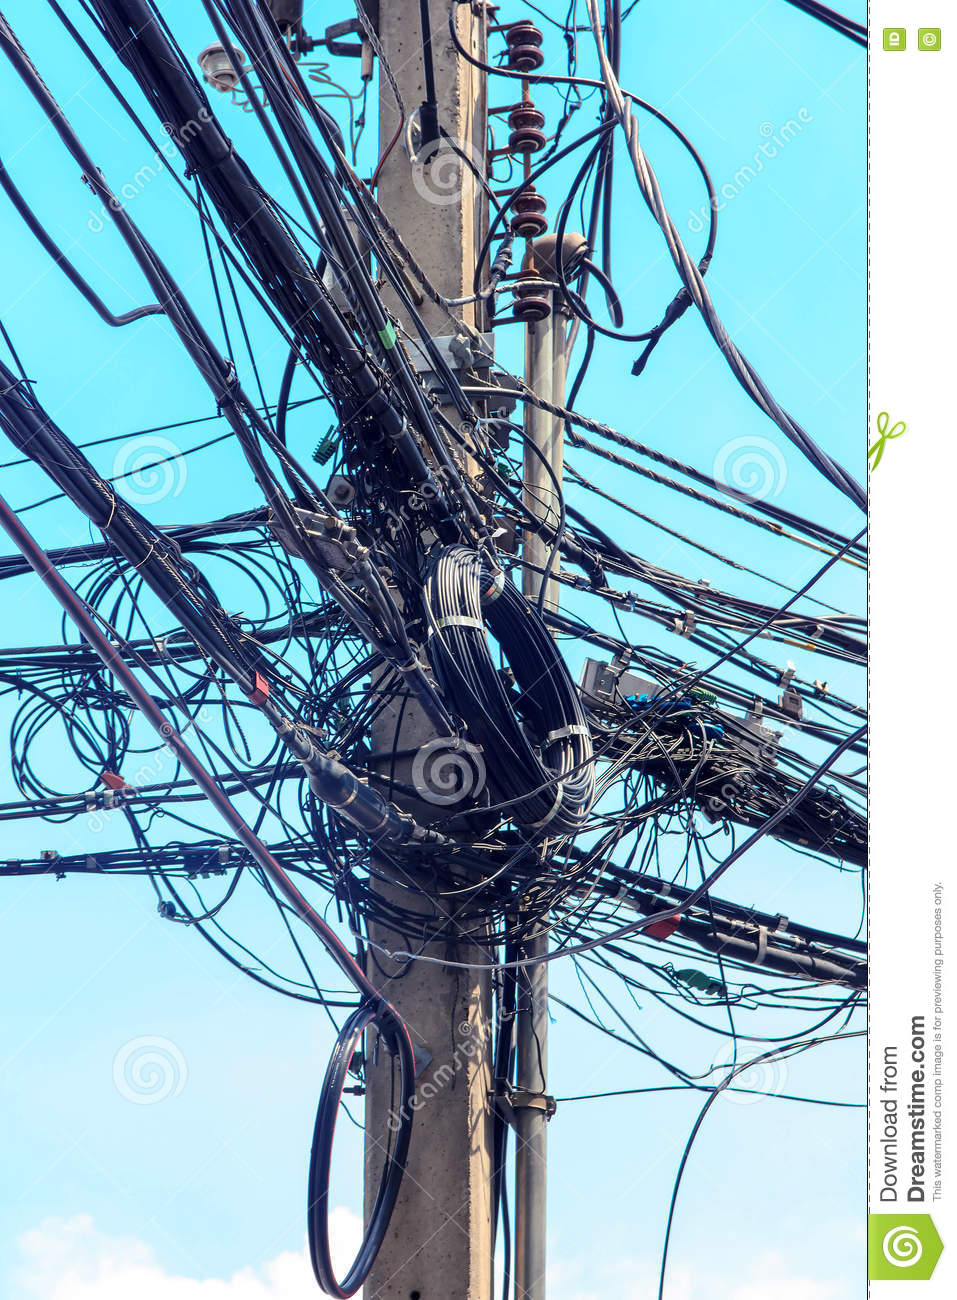 wiring cartoon pinterest wire electric messy stock photography | cartoondealer.com ...